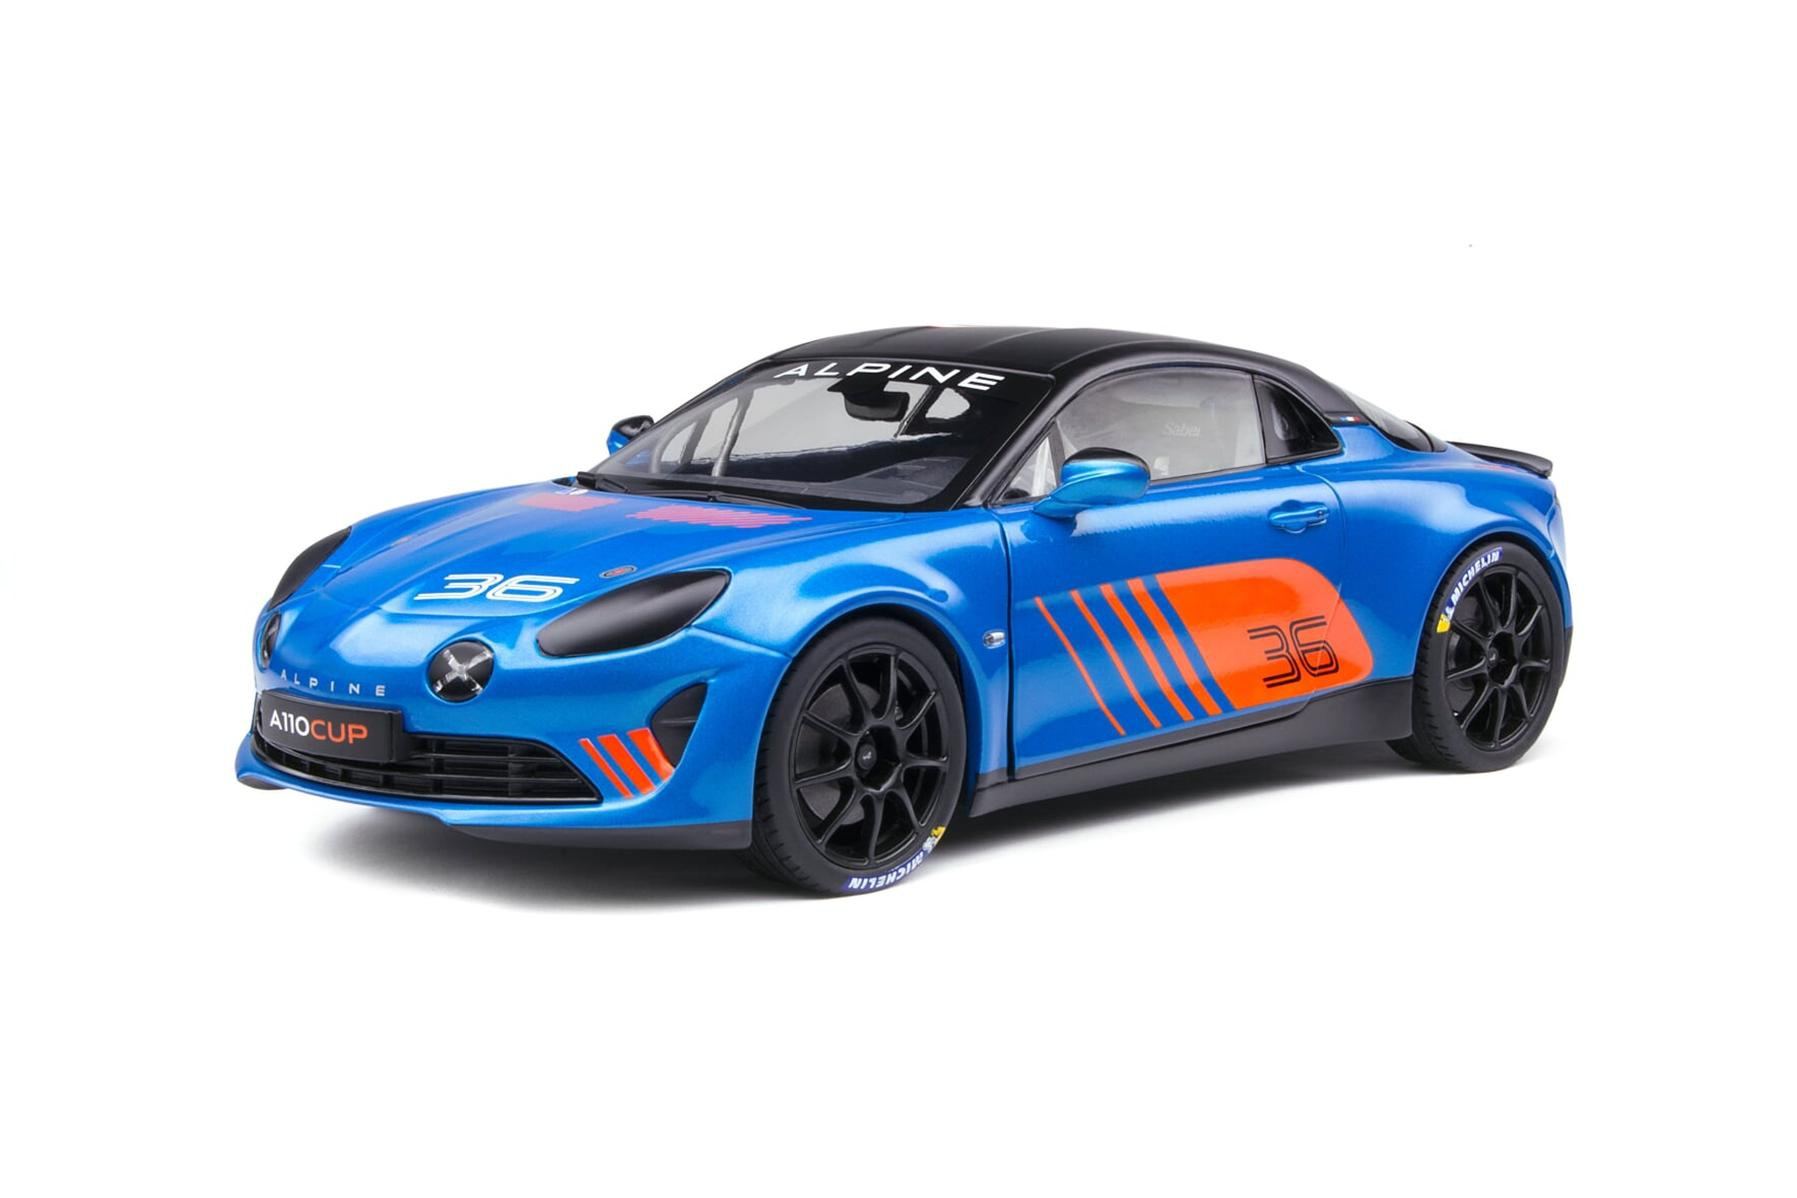 Alpine A110 CUP Launch livery